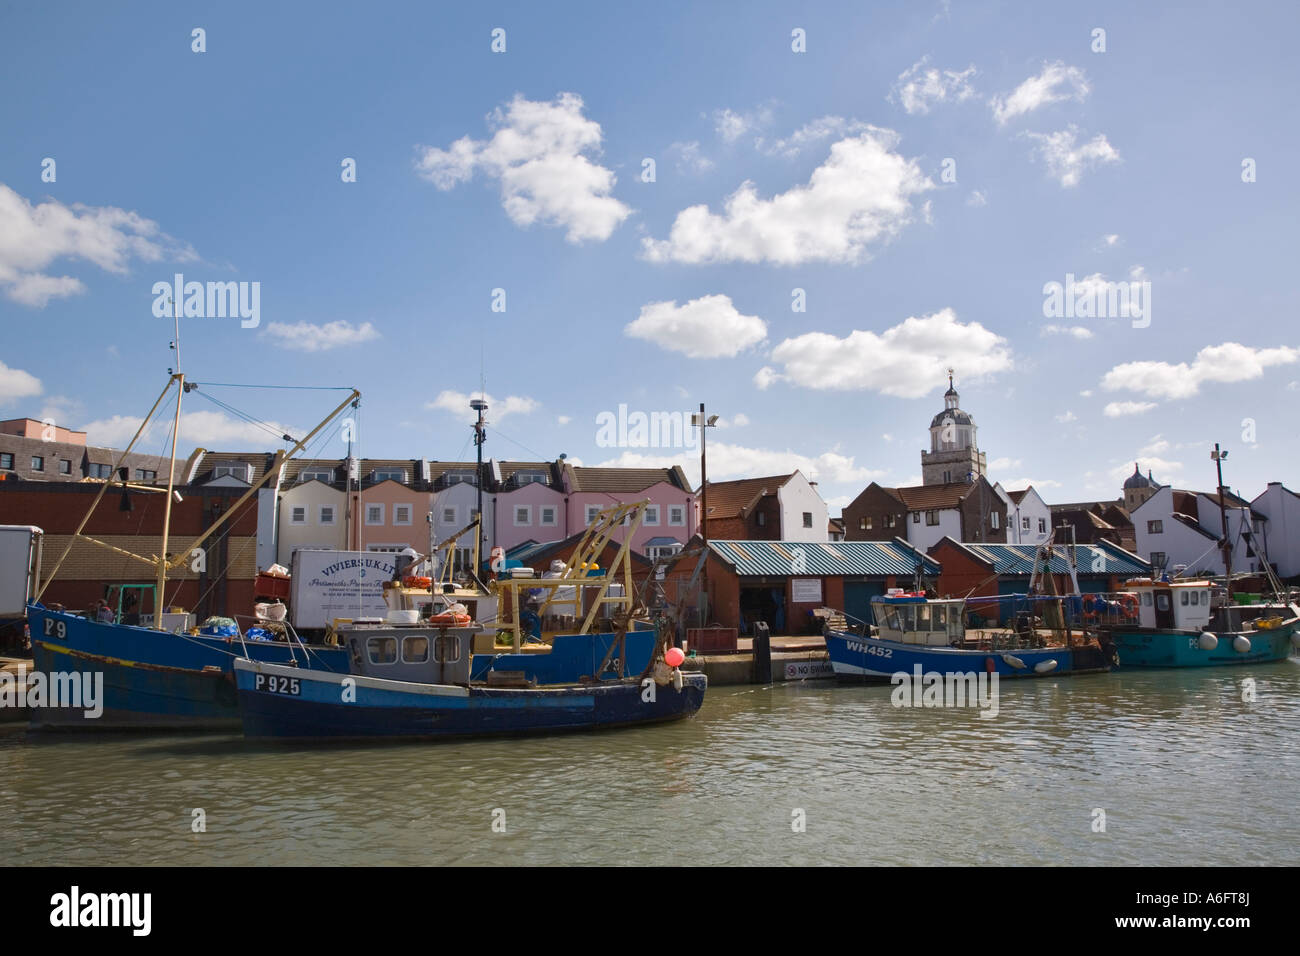 Town Camber fish docks with colourful fishing boats in water and modern housing development Old Portsmouth Hampshire Stock Photo